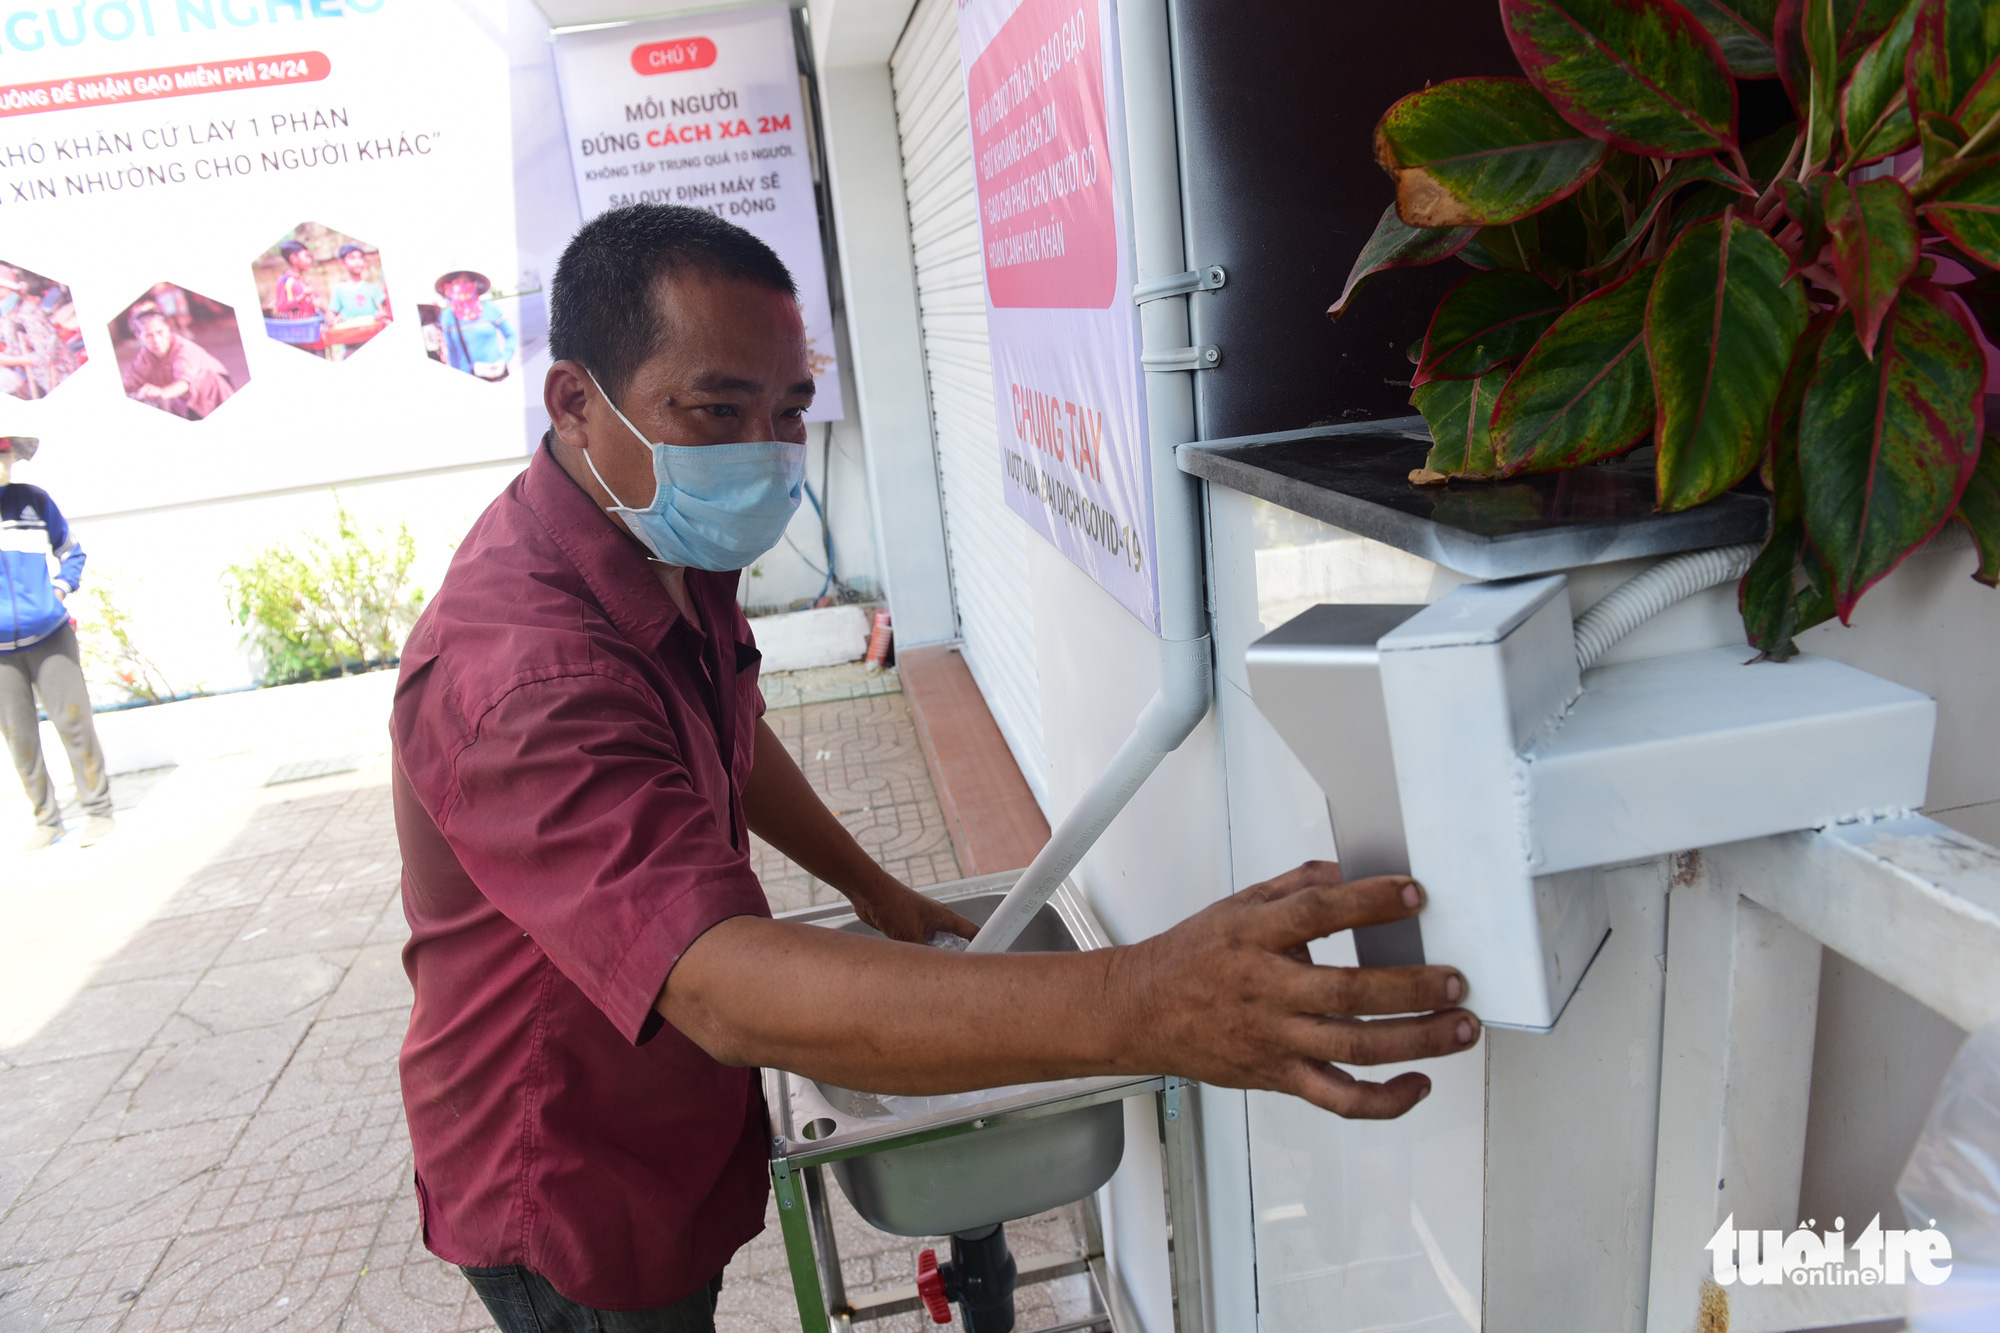 After pressing a button, rice flows from the rooftop down a chute and into a bag at a 'rice ATM' in Tan Phu District, Ho Chi Minh City, Vietnam. Photo: Quang Dinh / Tuoi Tre